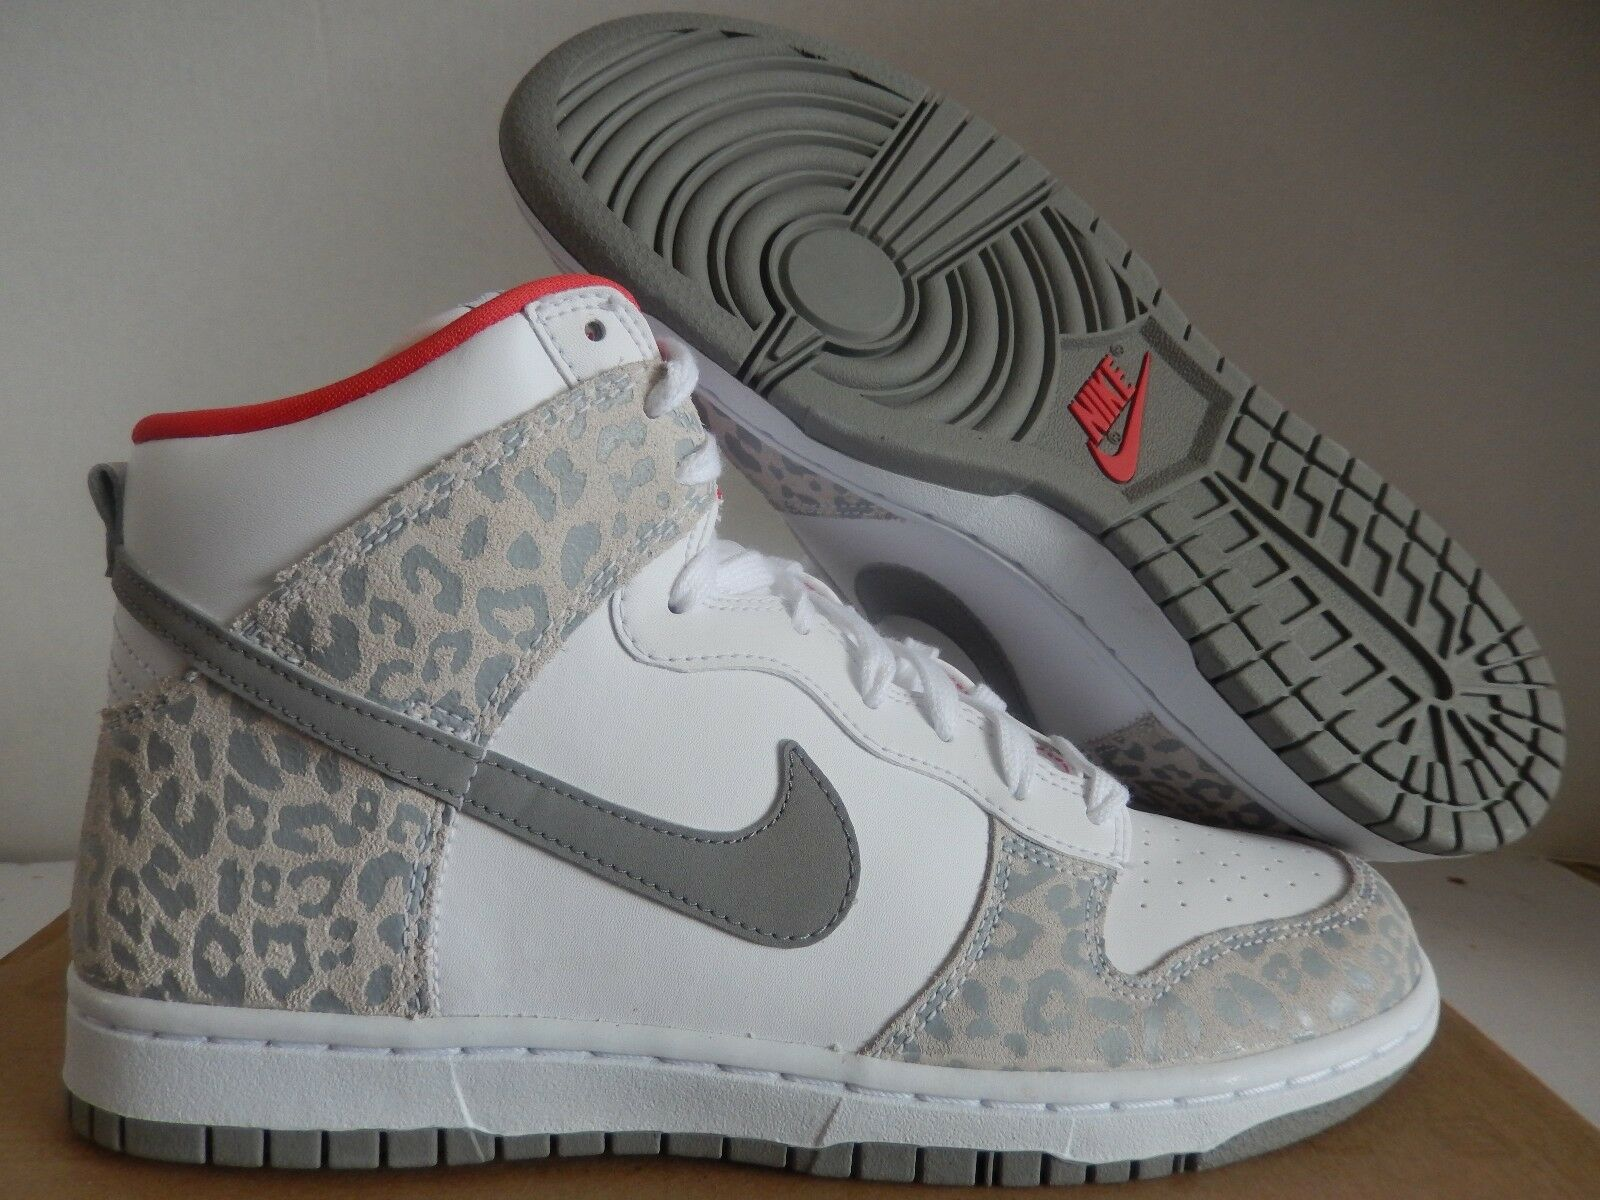 WMNS DUNK SKY HIGH SKINNY WHITE-MED GREY-SUNBURST LEOPARD SZ 8.5 [429984-102]